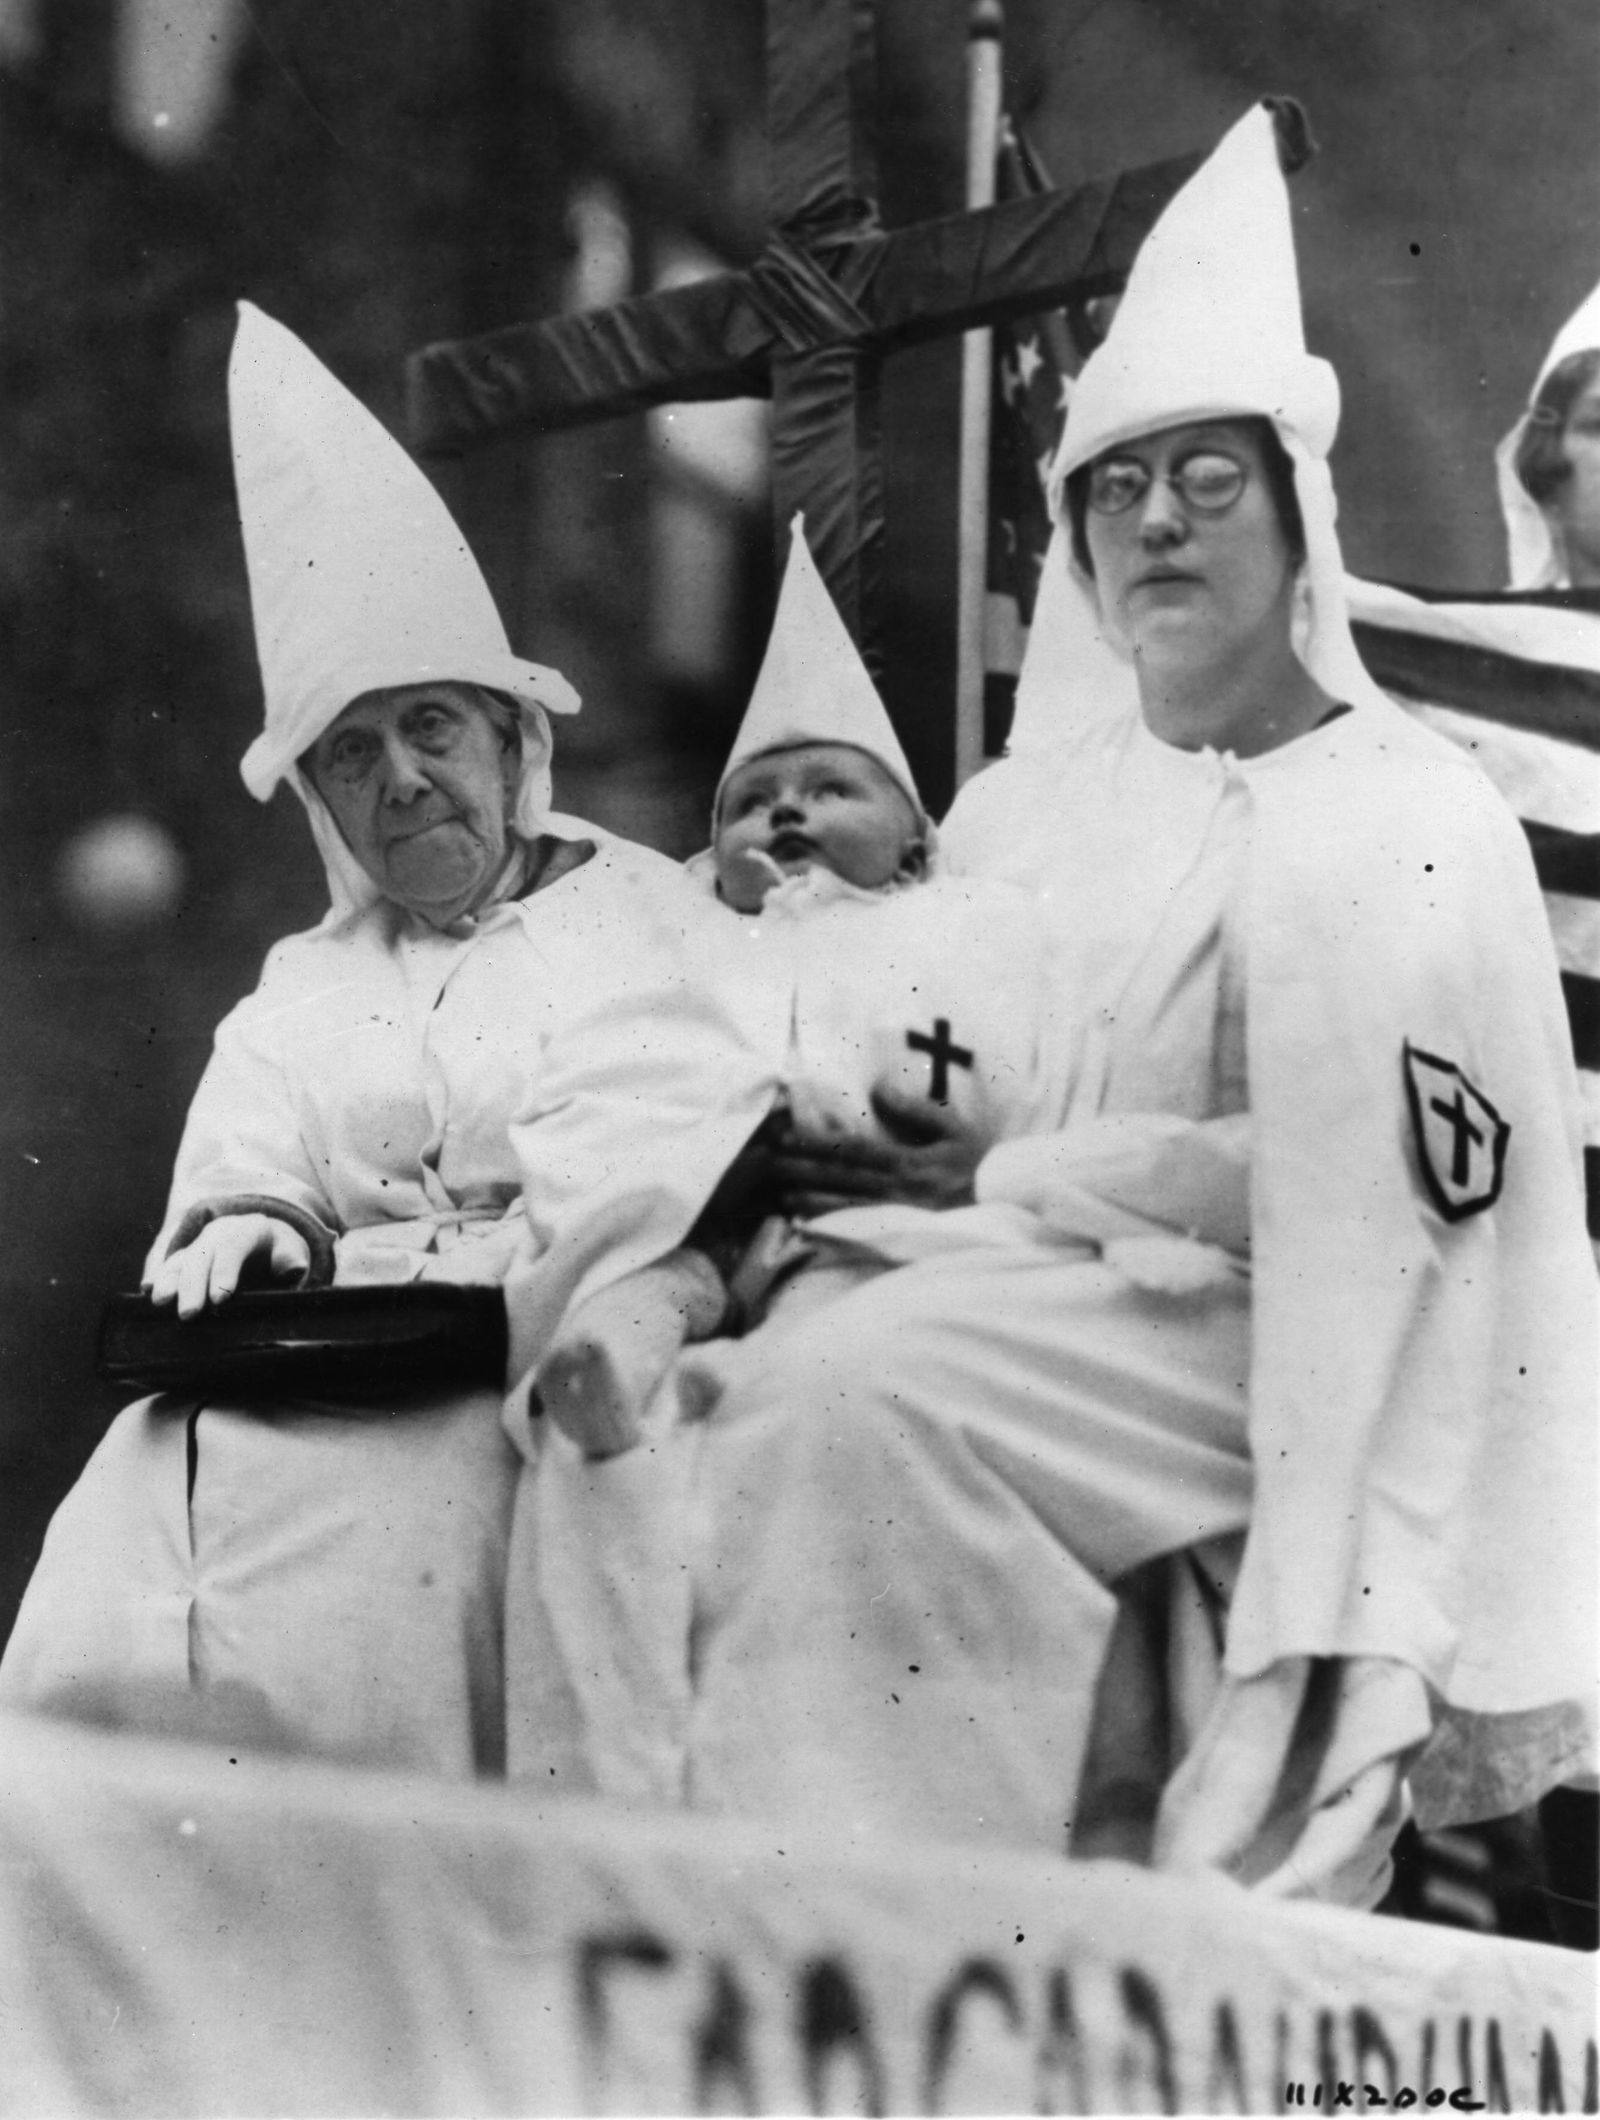 KKK und die Frauen - Fanatic members of the Ku-Klux-Klan, Photograph, October 26th 1925